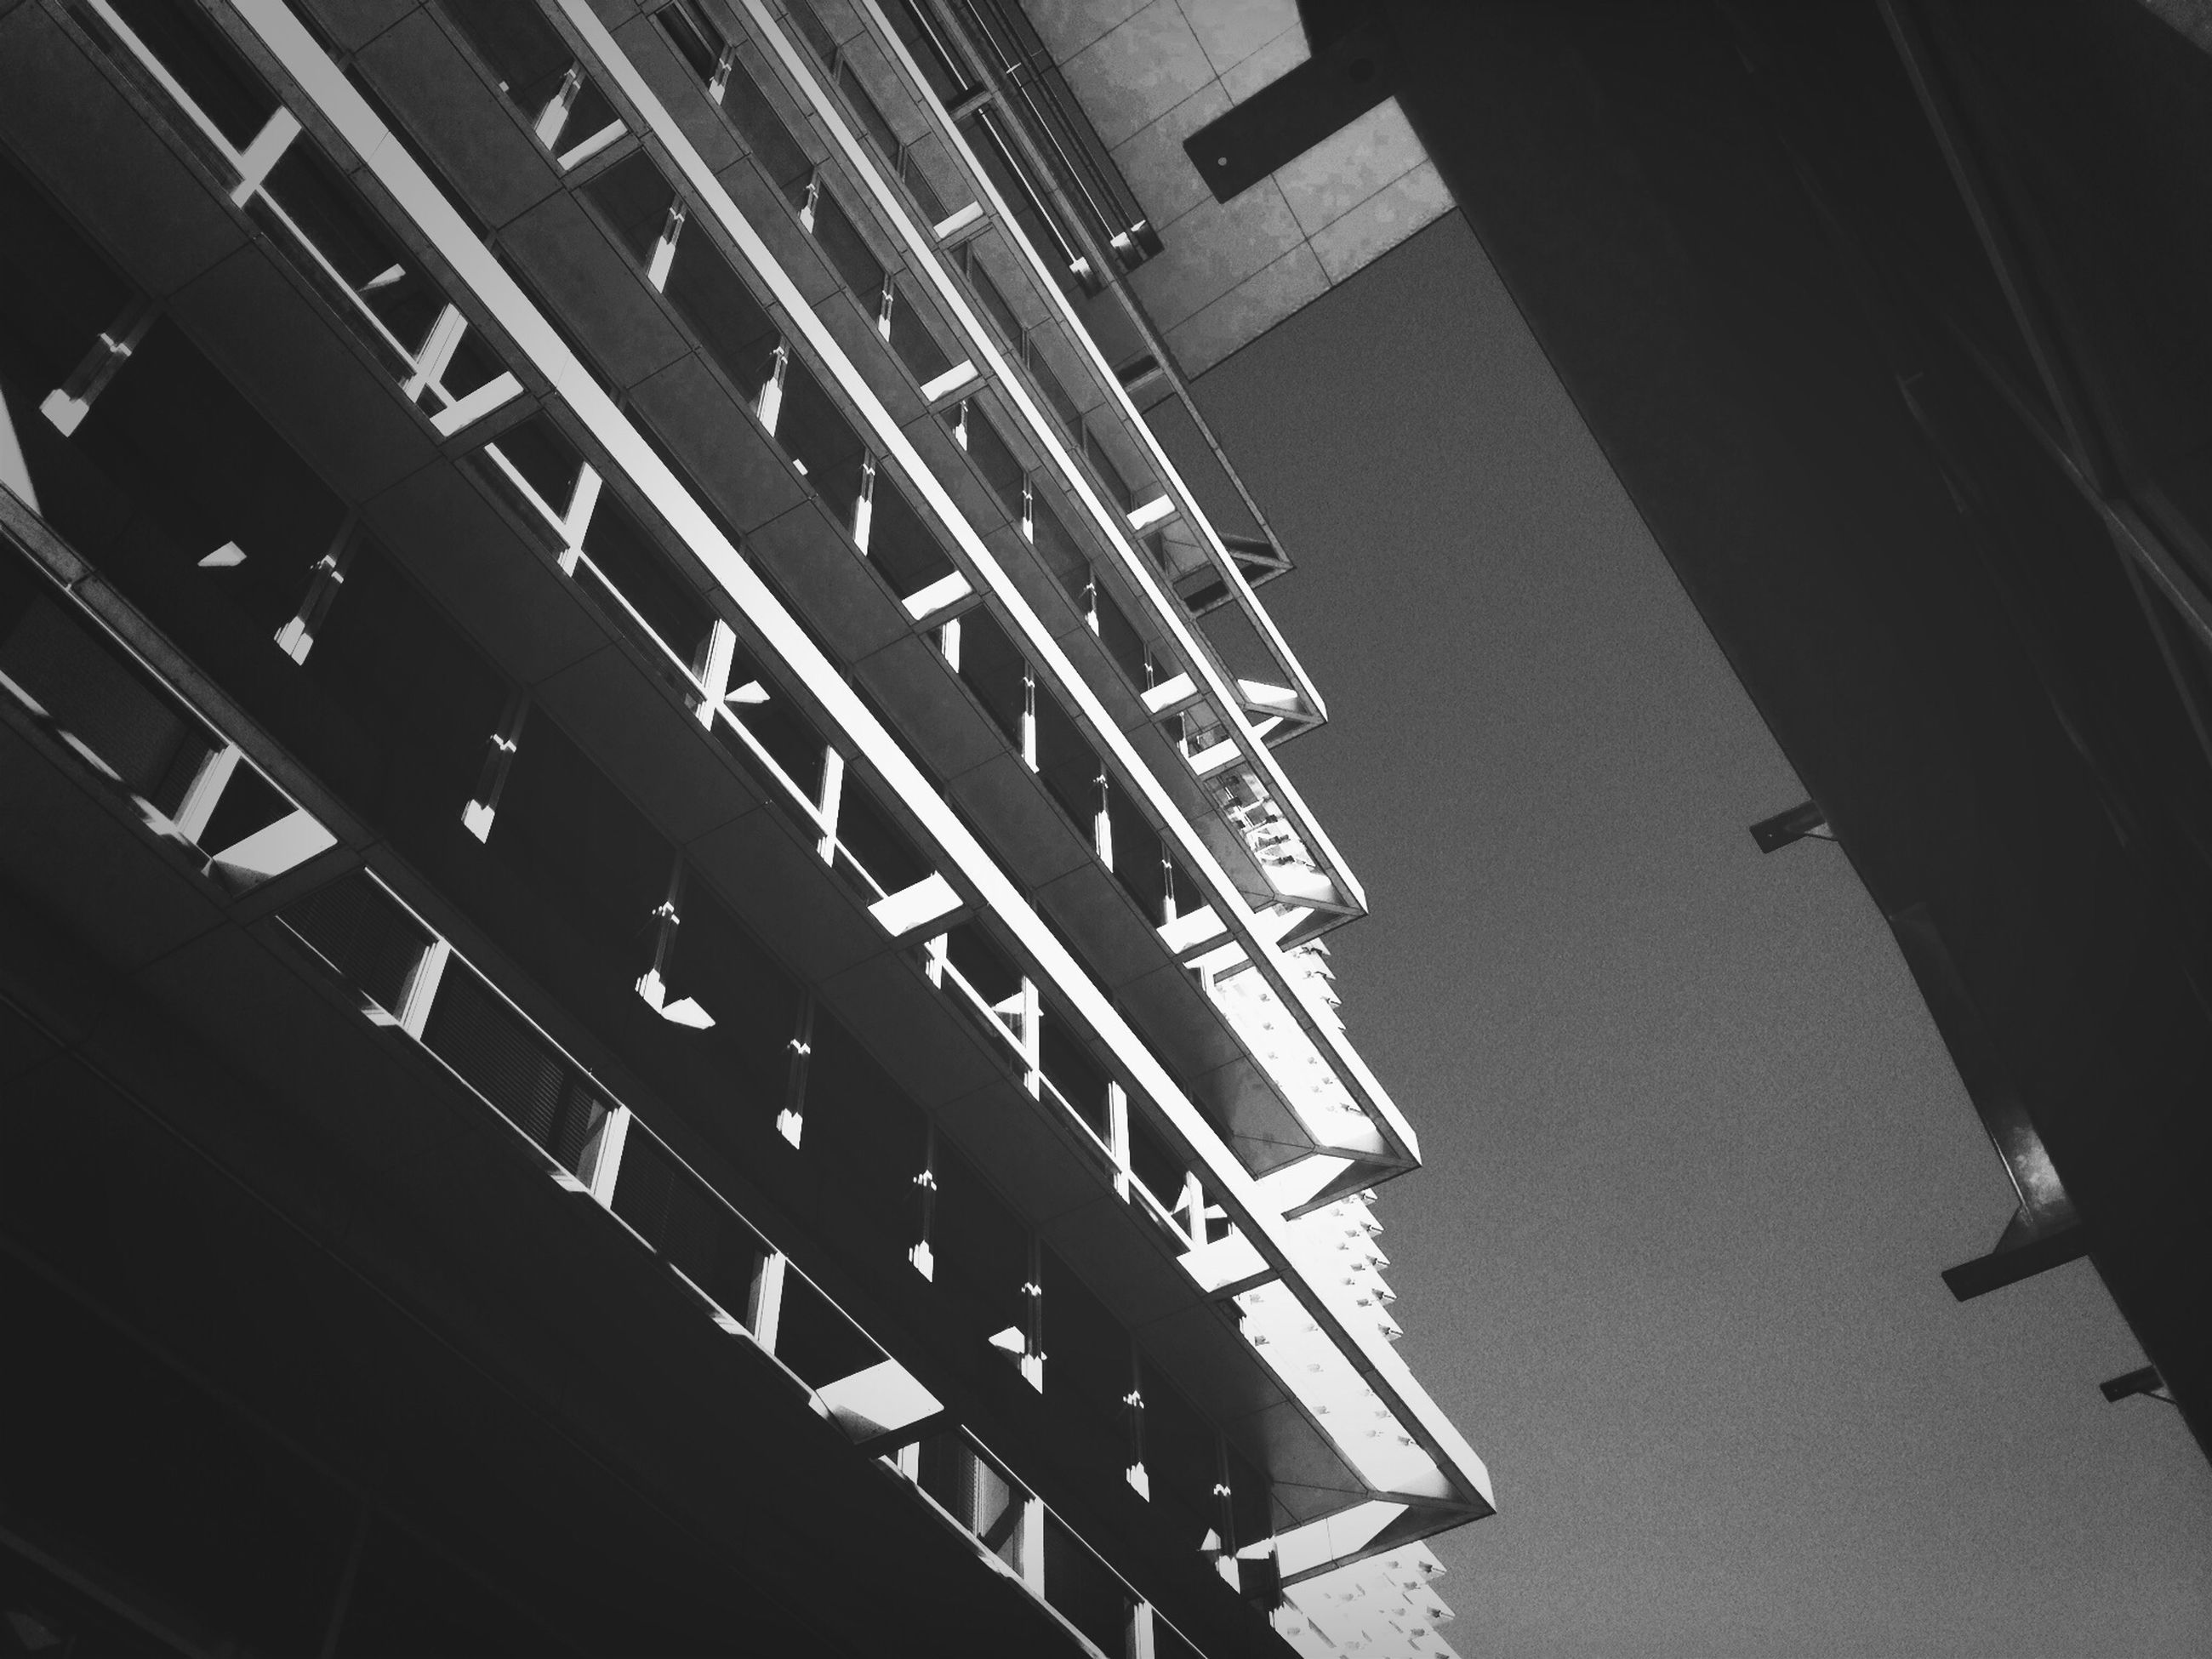 building exterior, architecture, built structure, low angle view, residential building, city, building, residential structure, window, apartment, clear sky, outdoors, balcony, in a row, no people, day, sky, house, city life, tall - high